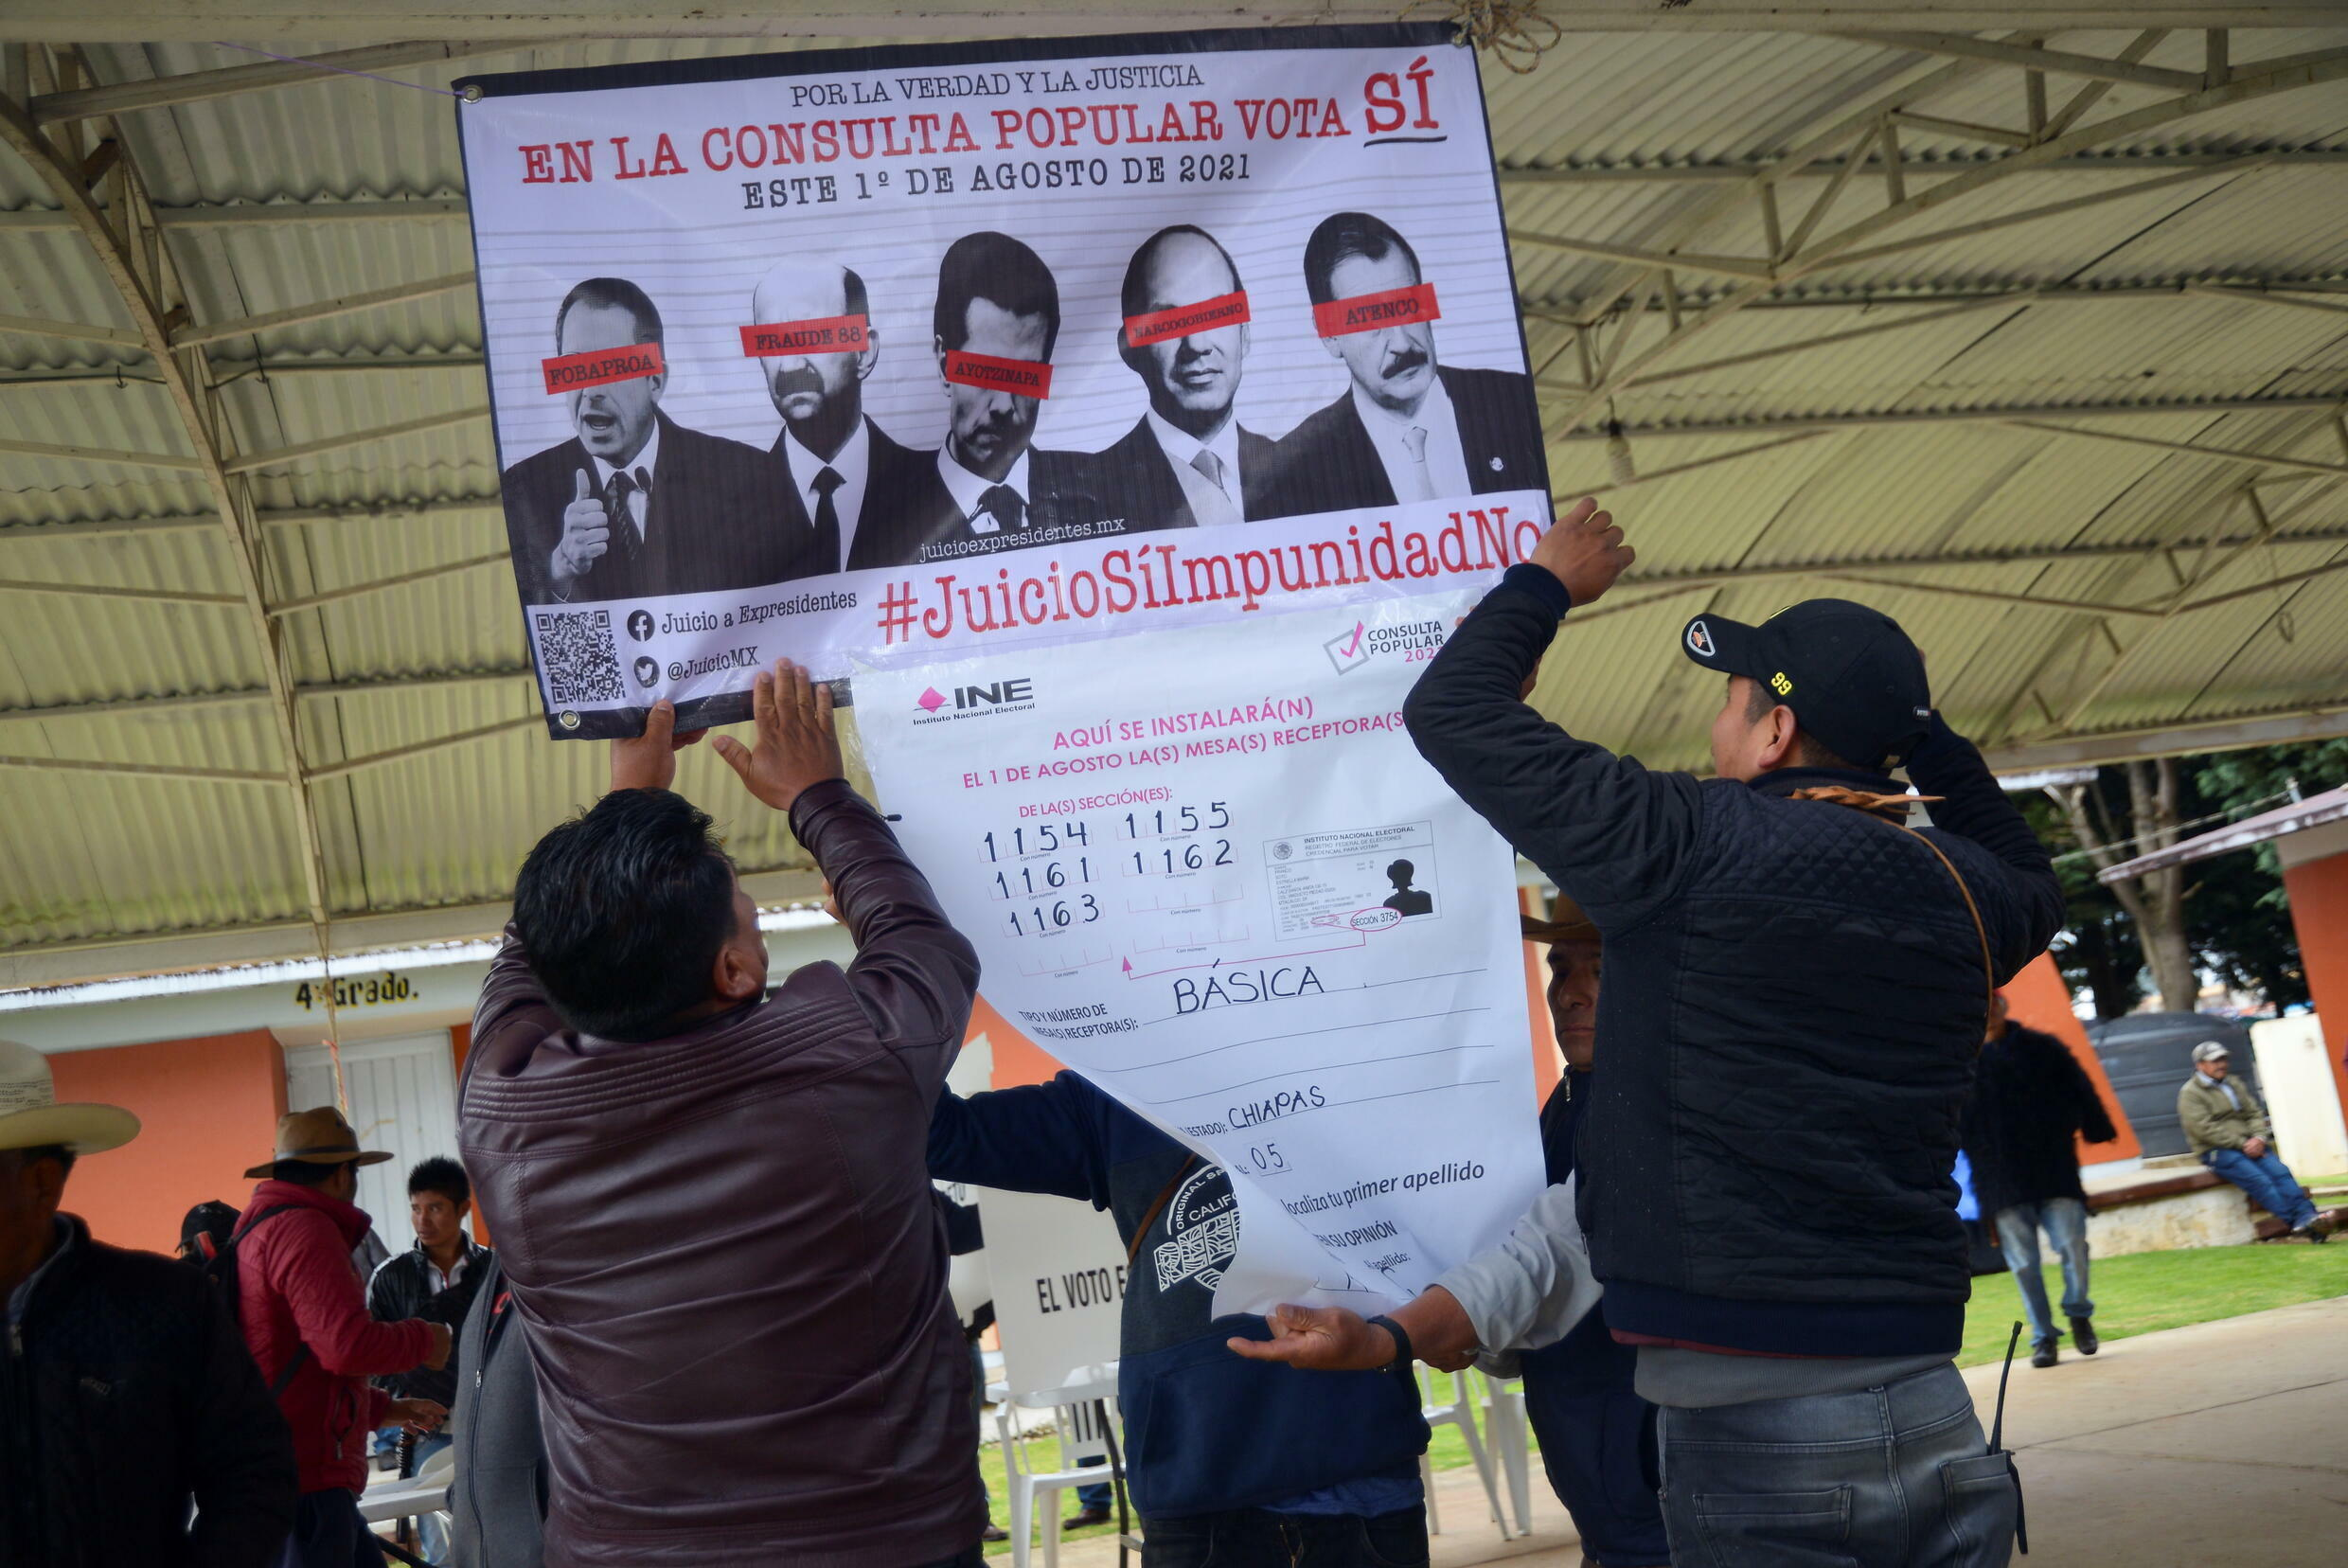 Referendum to decide whether to investigate five former Mexican leaders, in the Corazón de María.